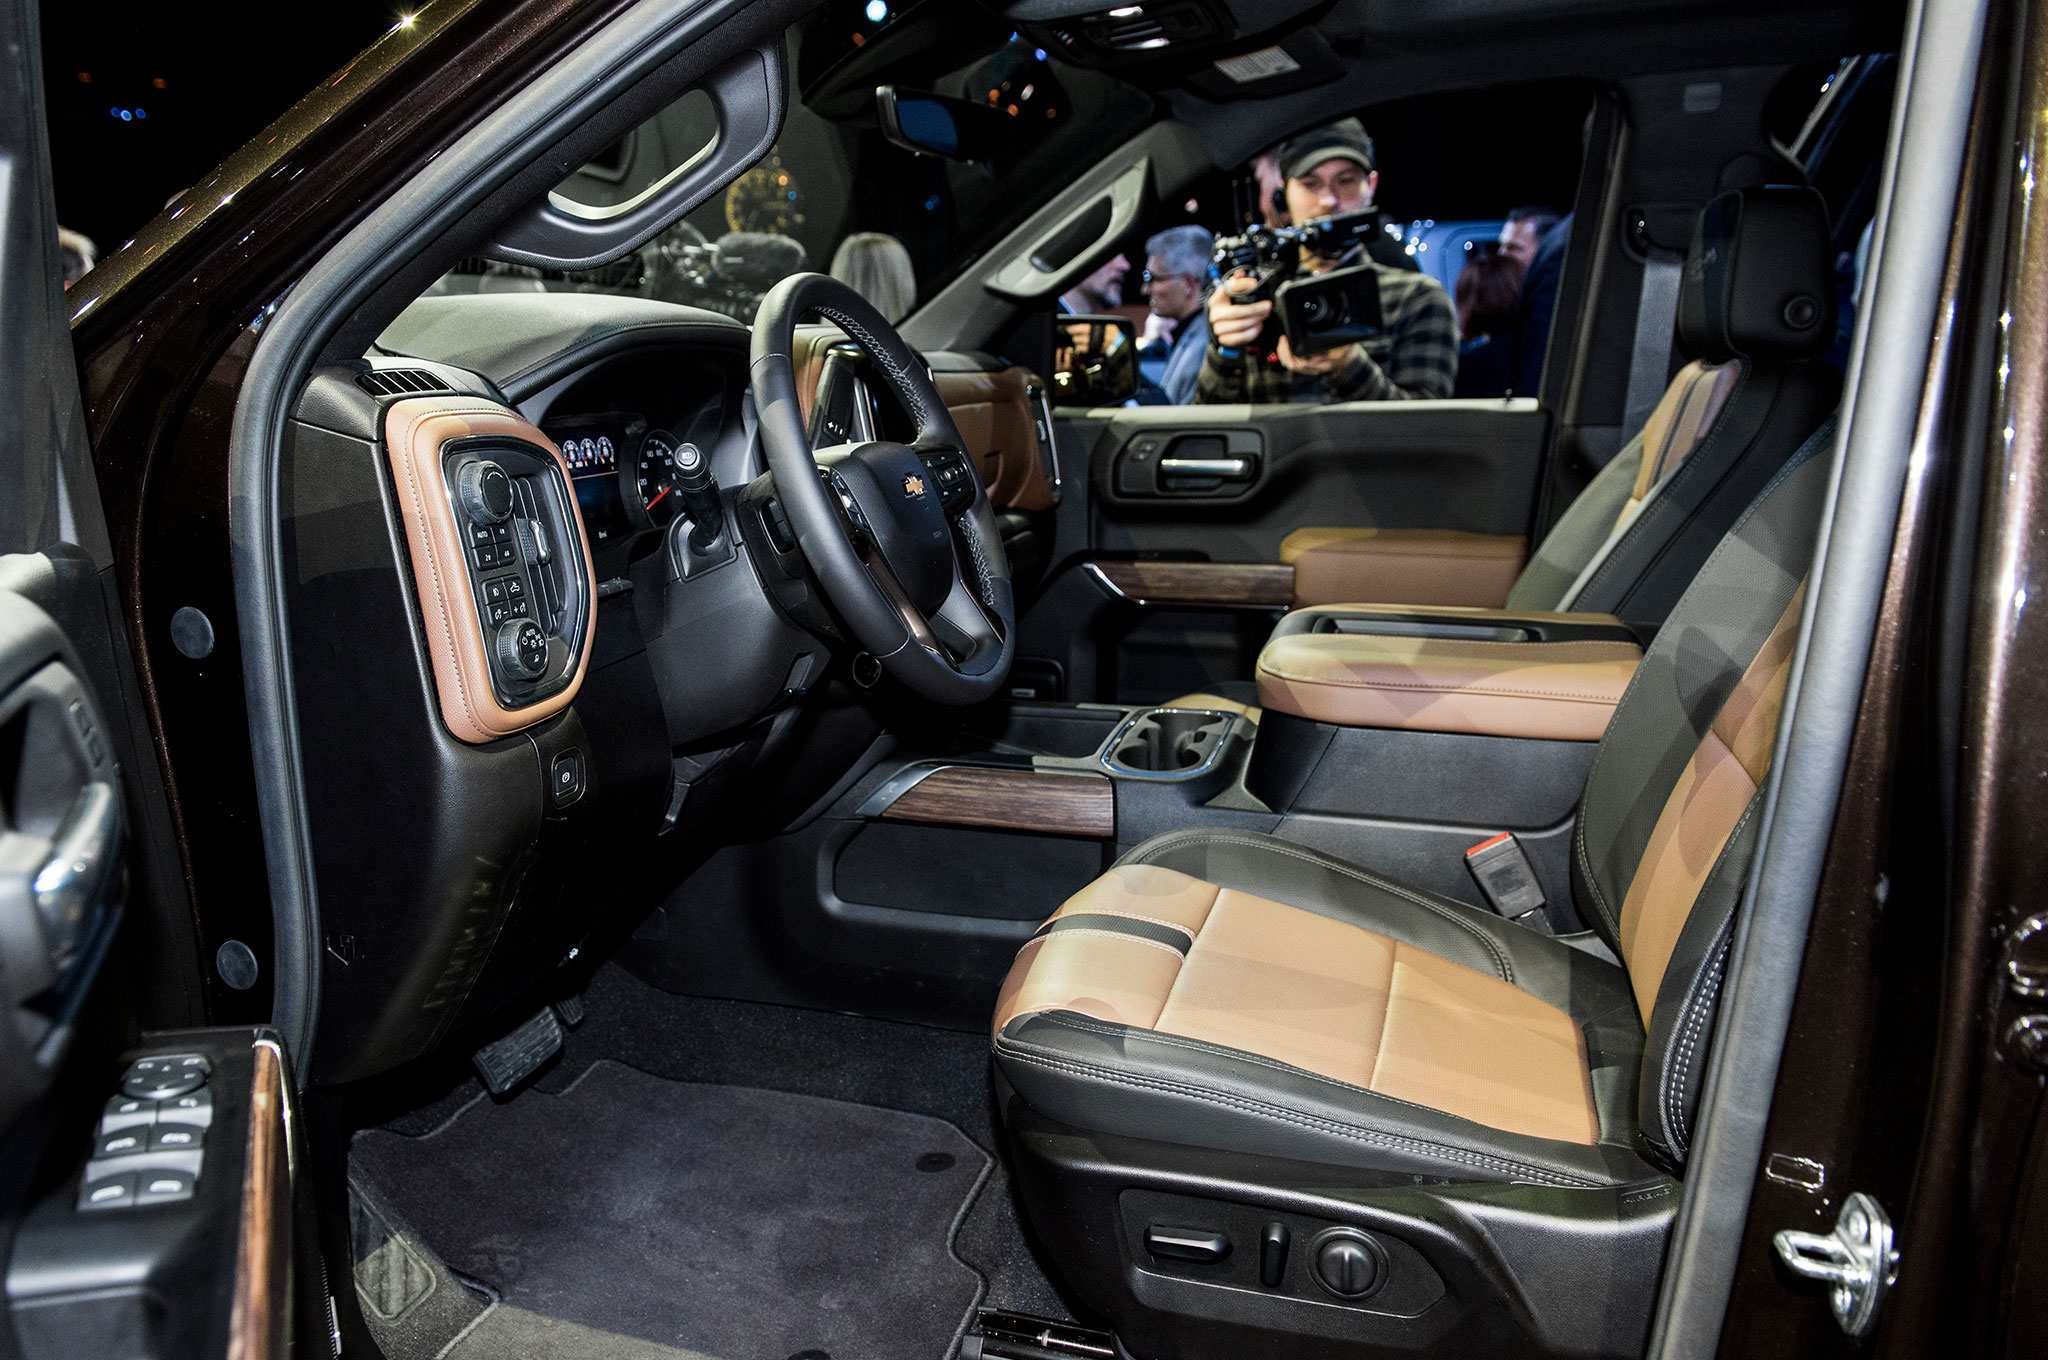 52 All New 2019 Chevrolet High Country Interior Price and Review with 2019 Chevrolet High Country Interior